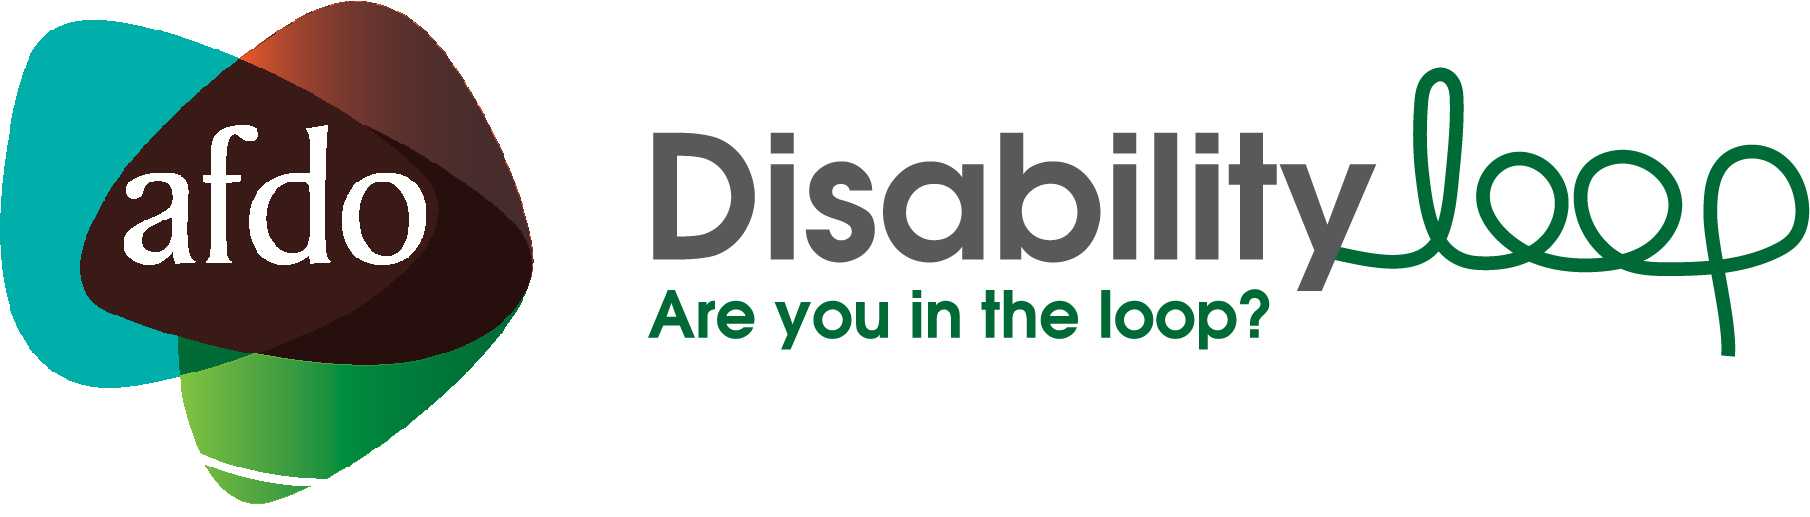 AFDO Disability Loop Logo